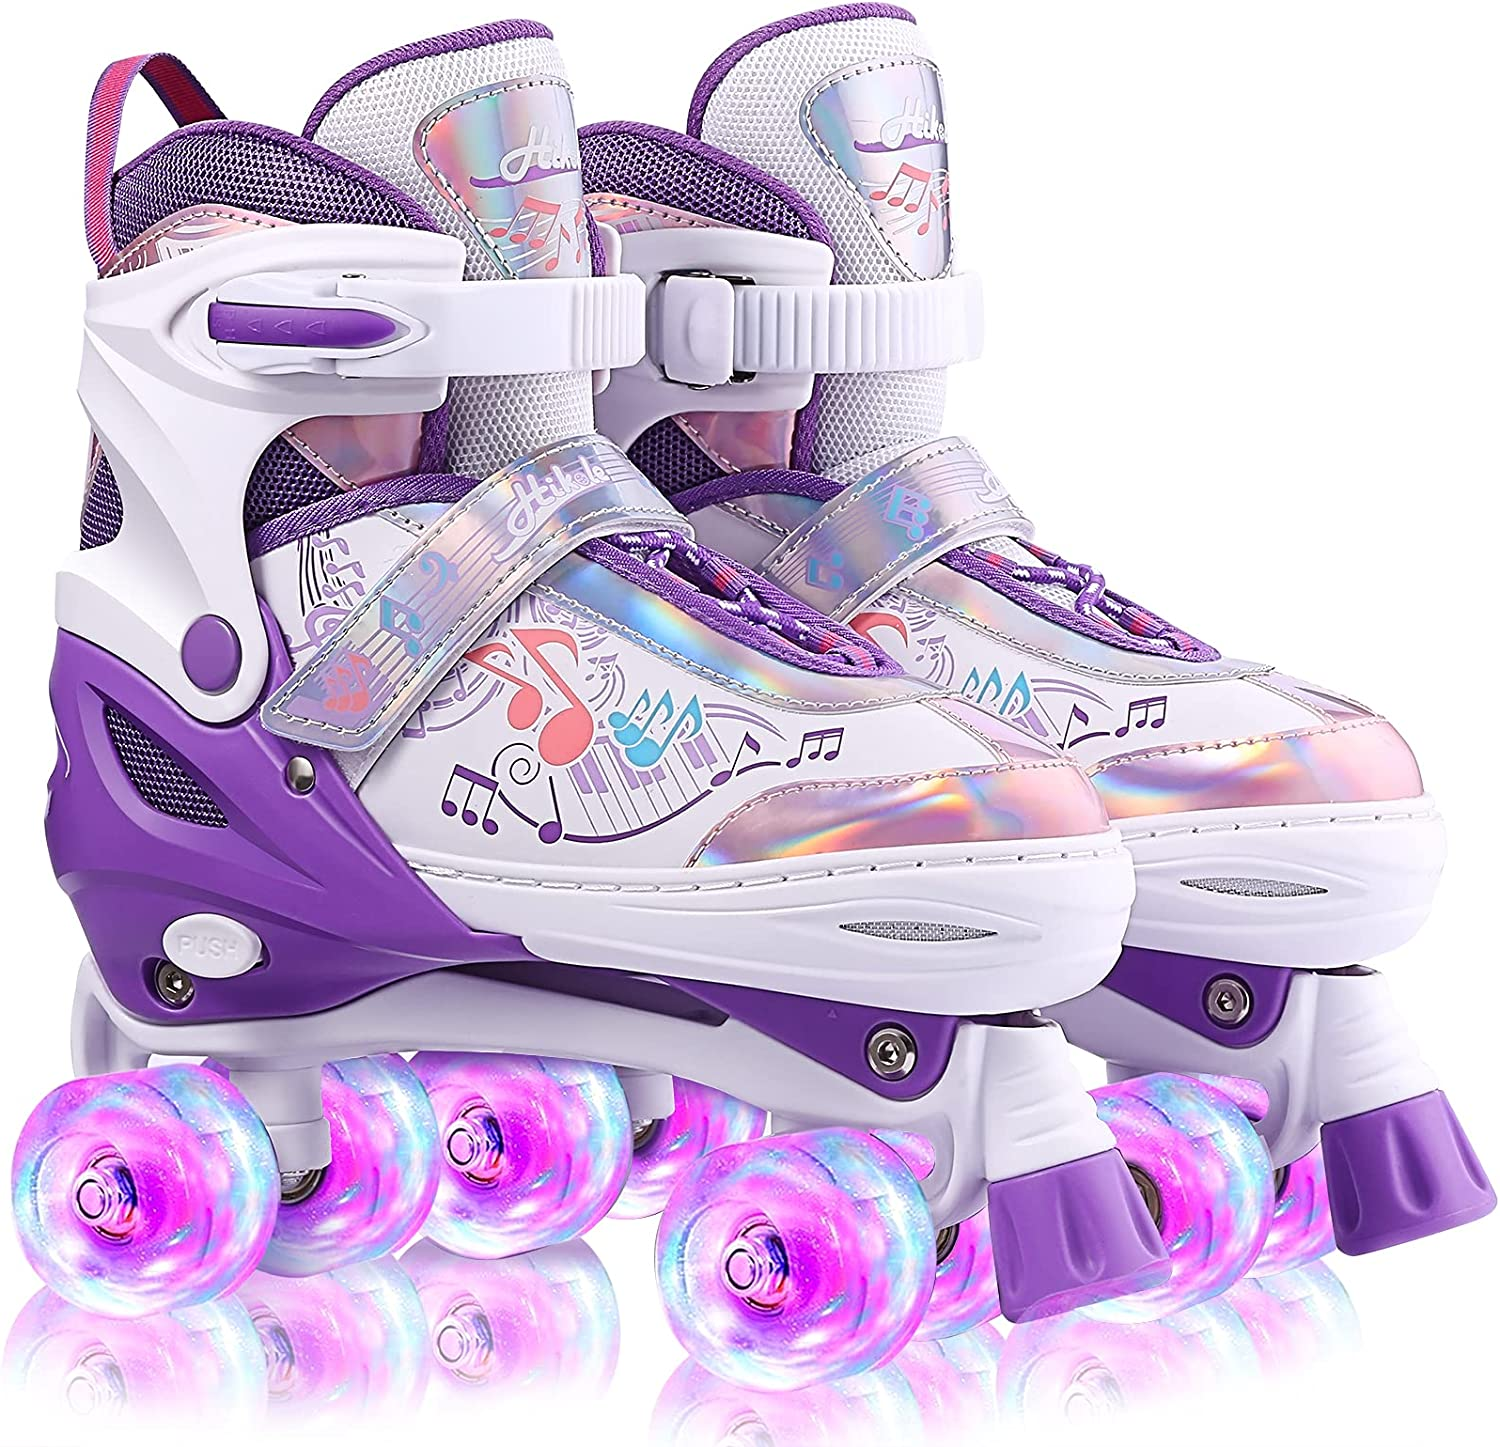 ANCHEER Roller Skates New Free Shipping for Special price Girls Breathable Triple Mesh Quad Lock